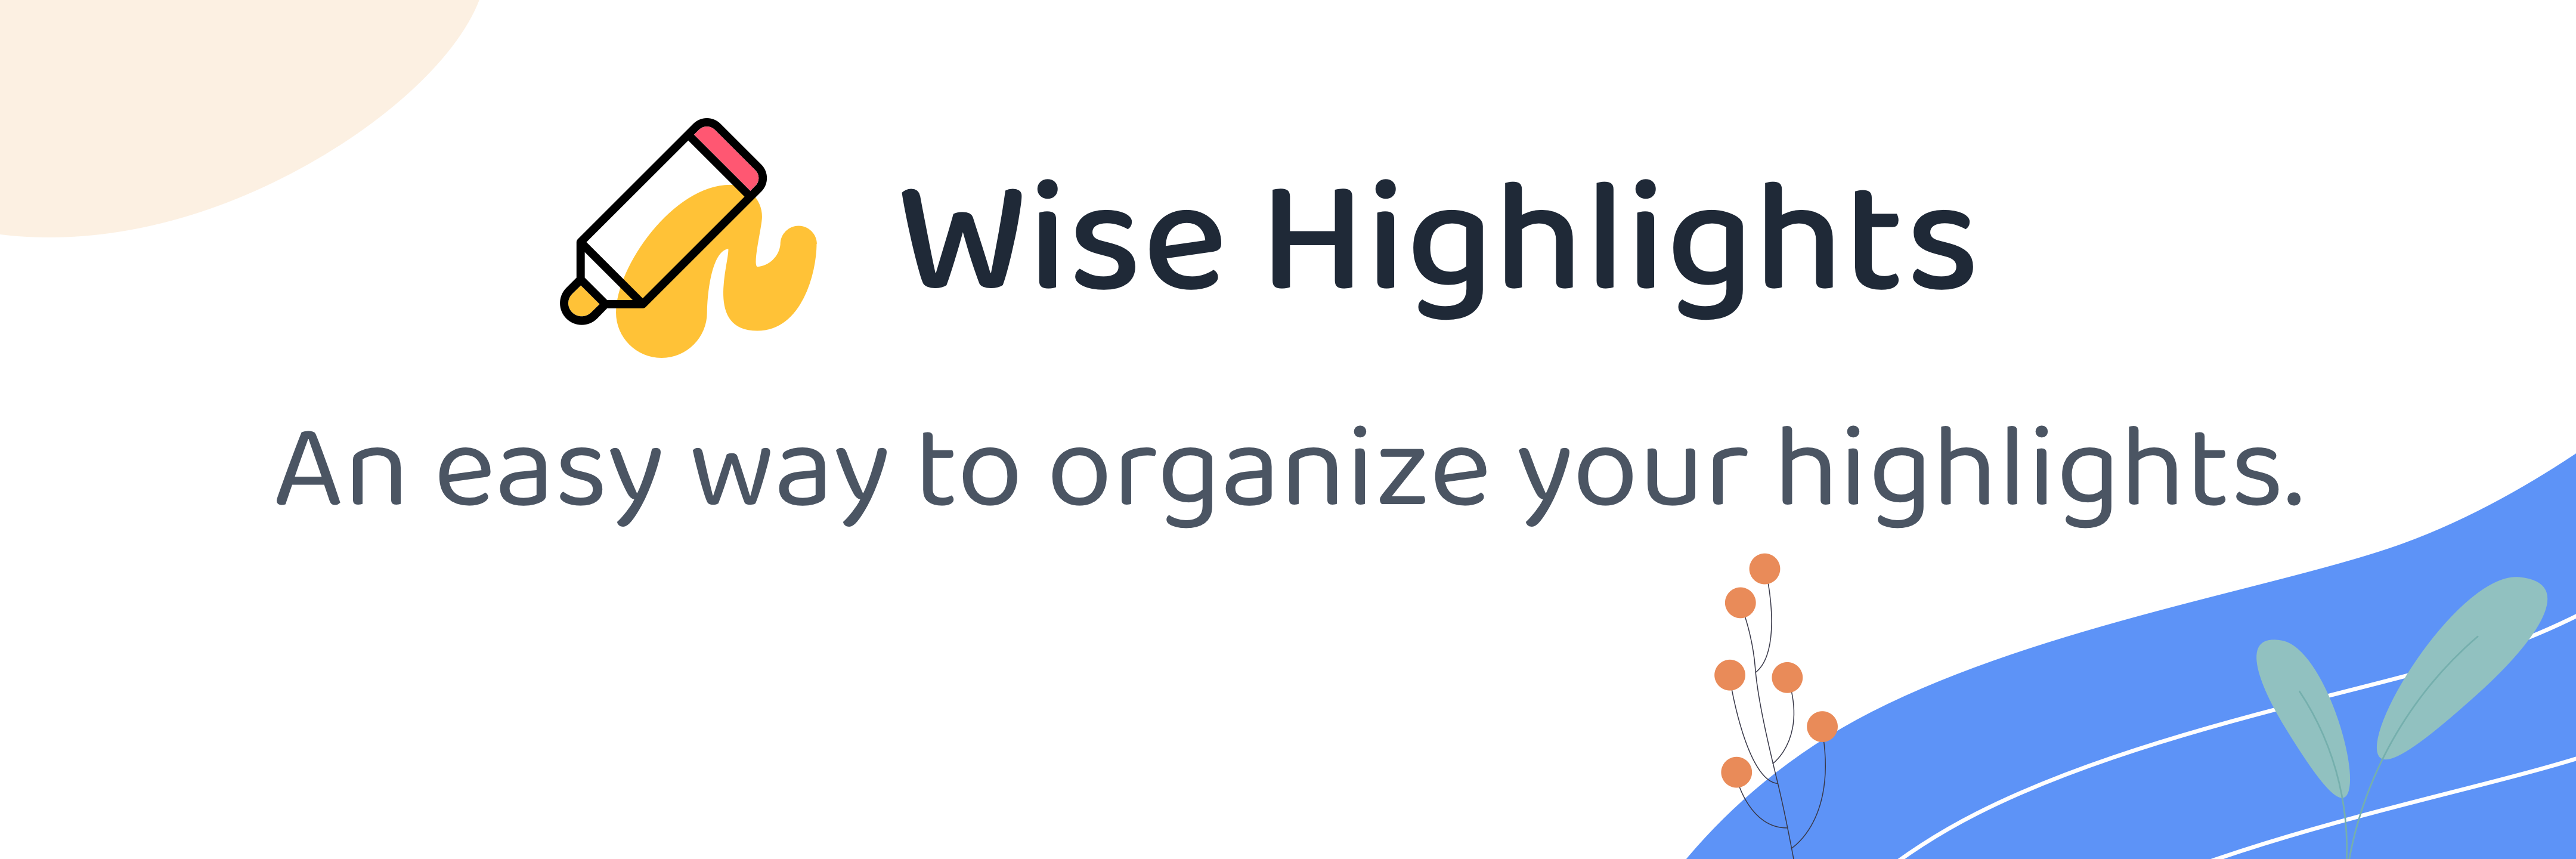 Wise Highlights banner